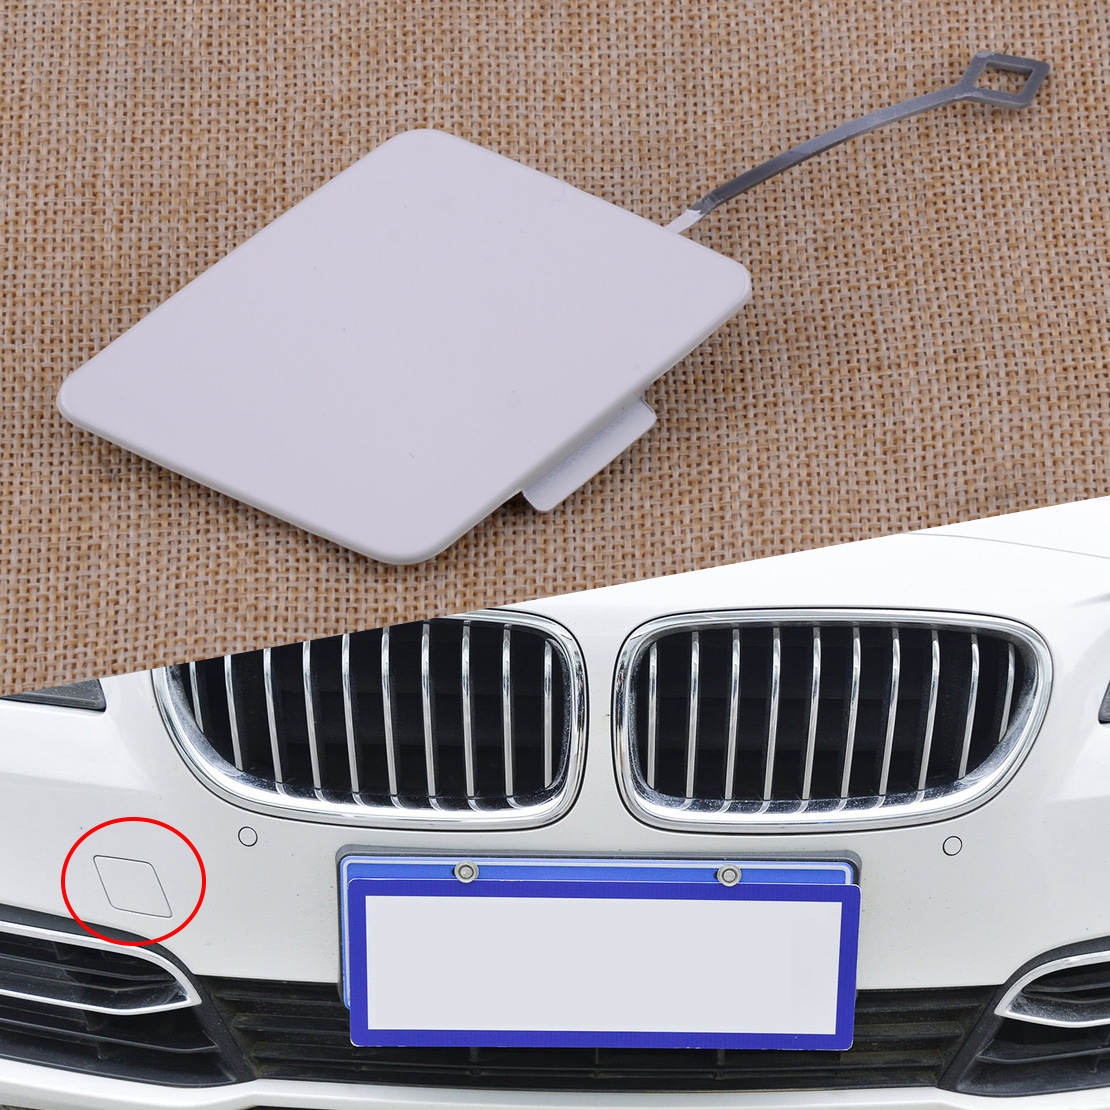 beler White Front Bumper Tow Hook Cap Cover Fit for BMW 528i 535i 535D 550i 2014-2016 51117332838 51117332682